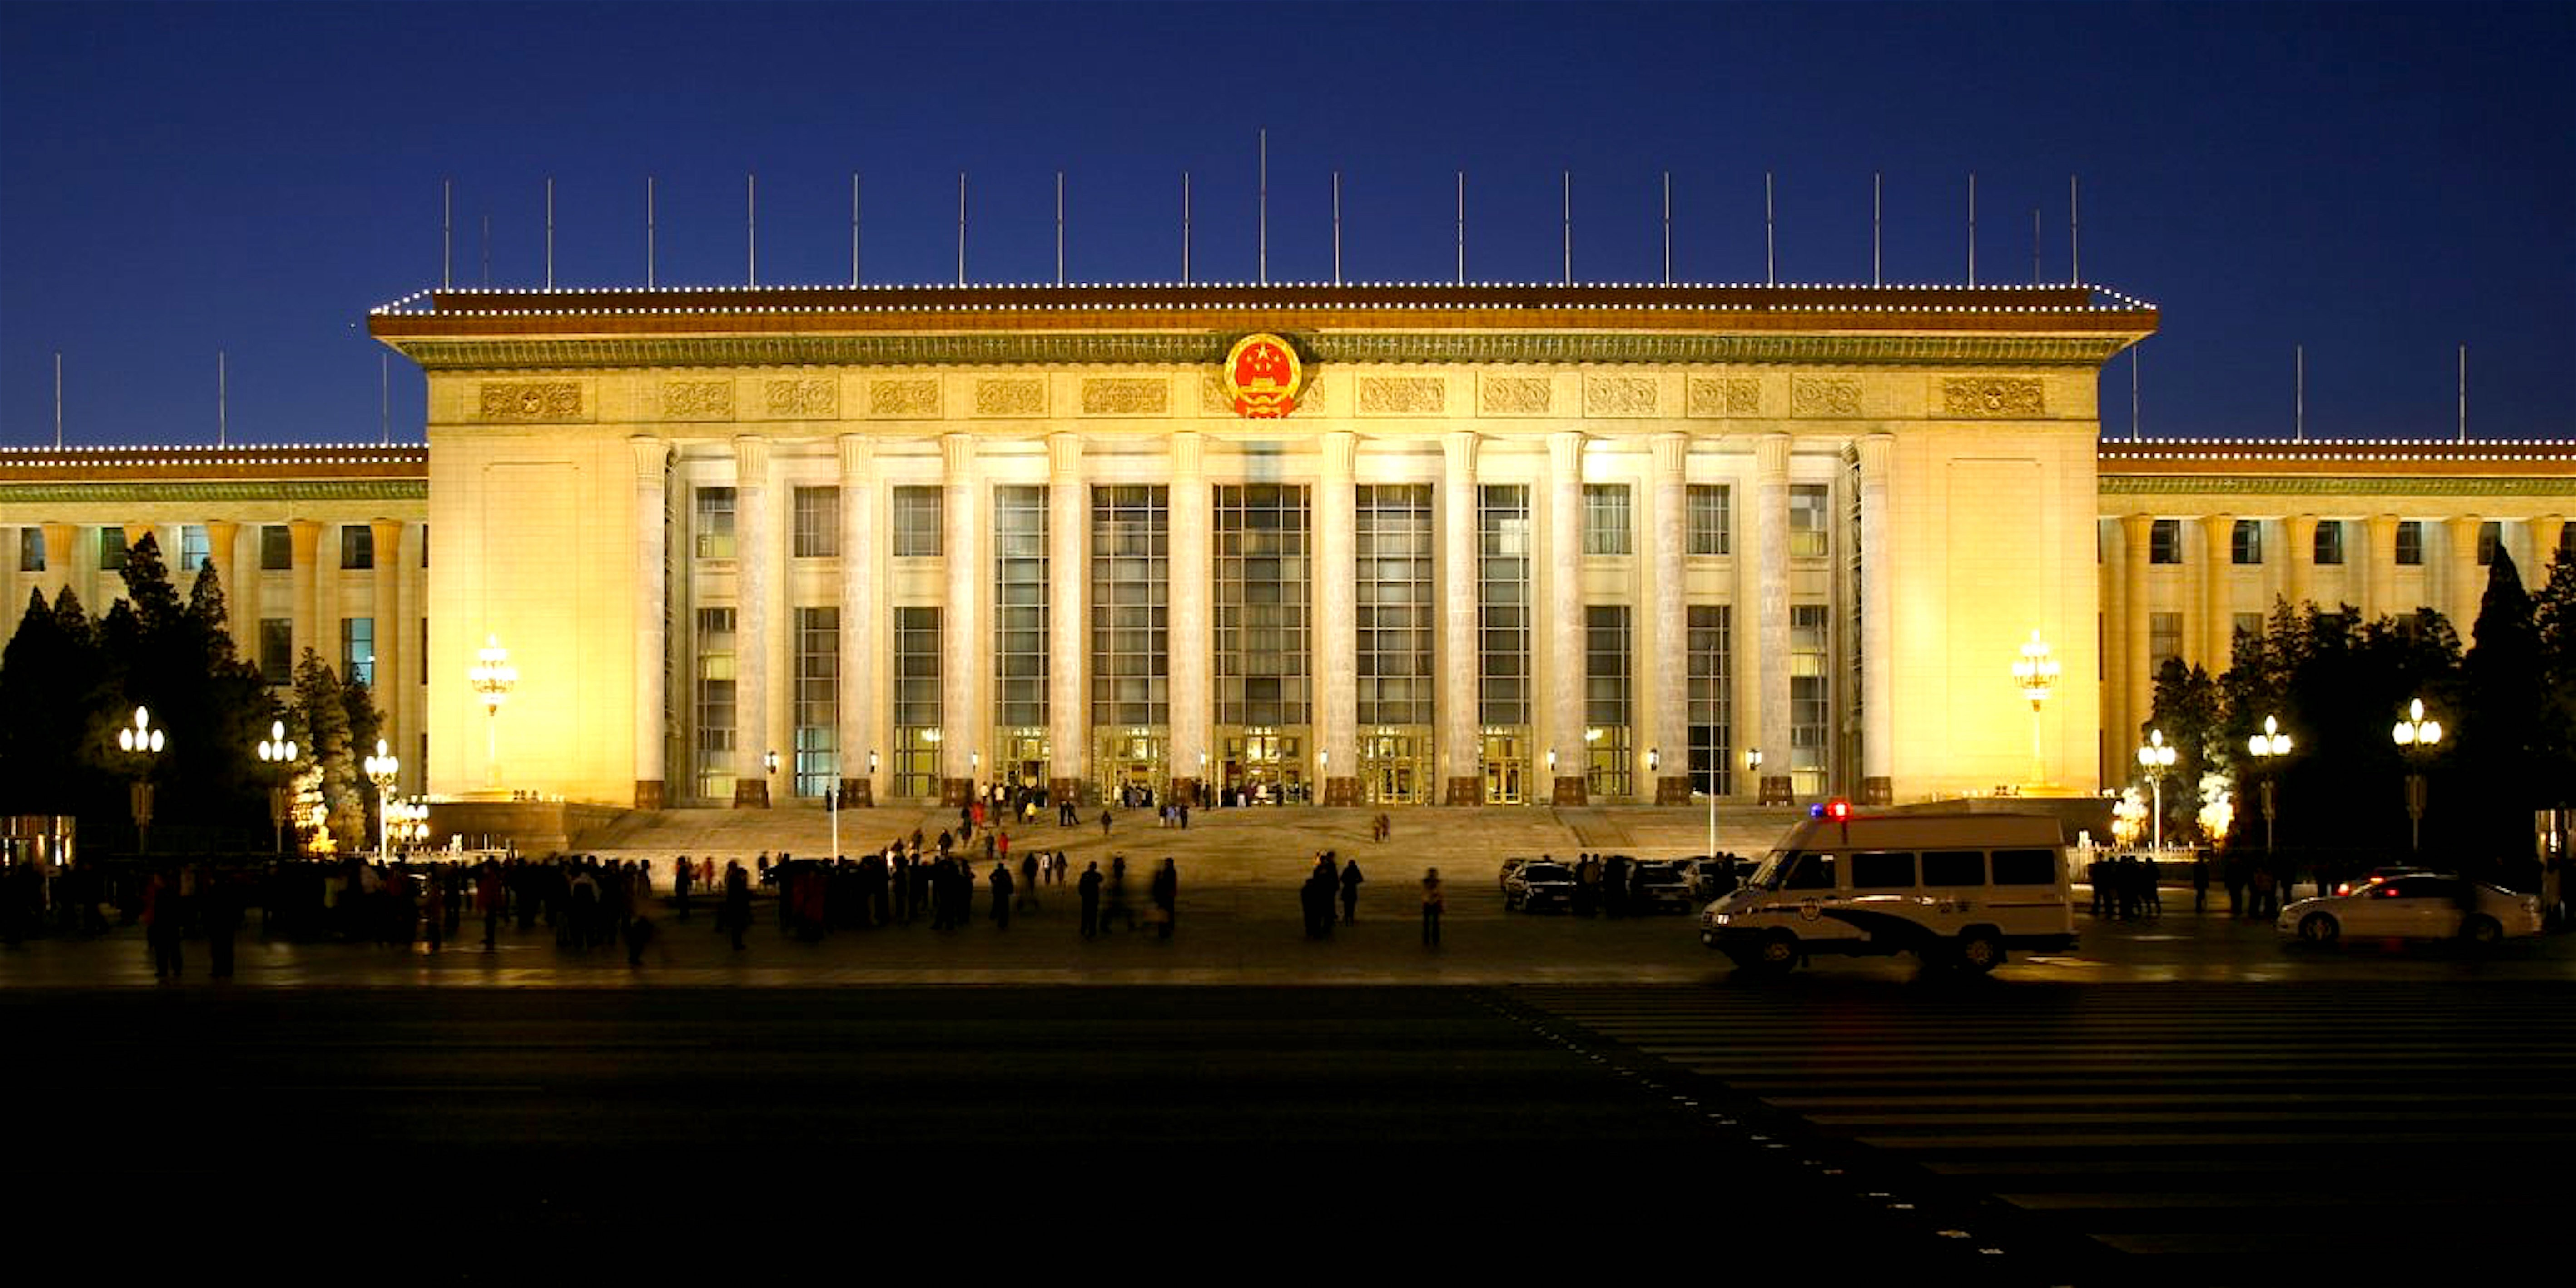 The Great Hall of the People in Beijing, one of China's largest state buildings (foto Wikipedia)